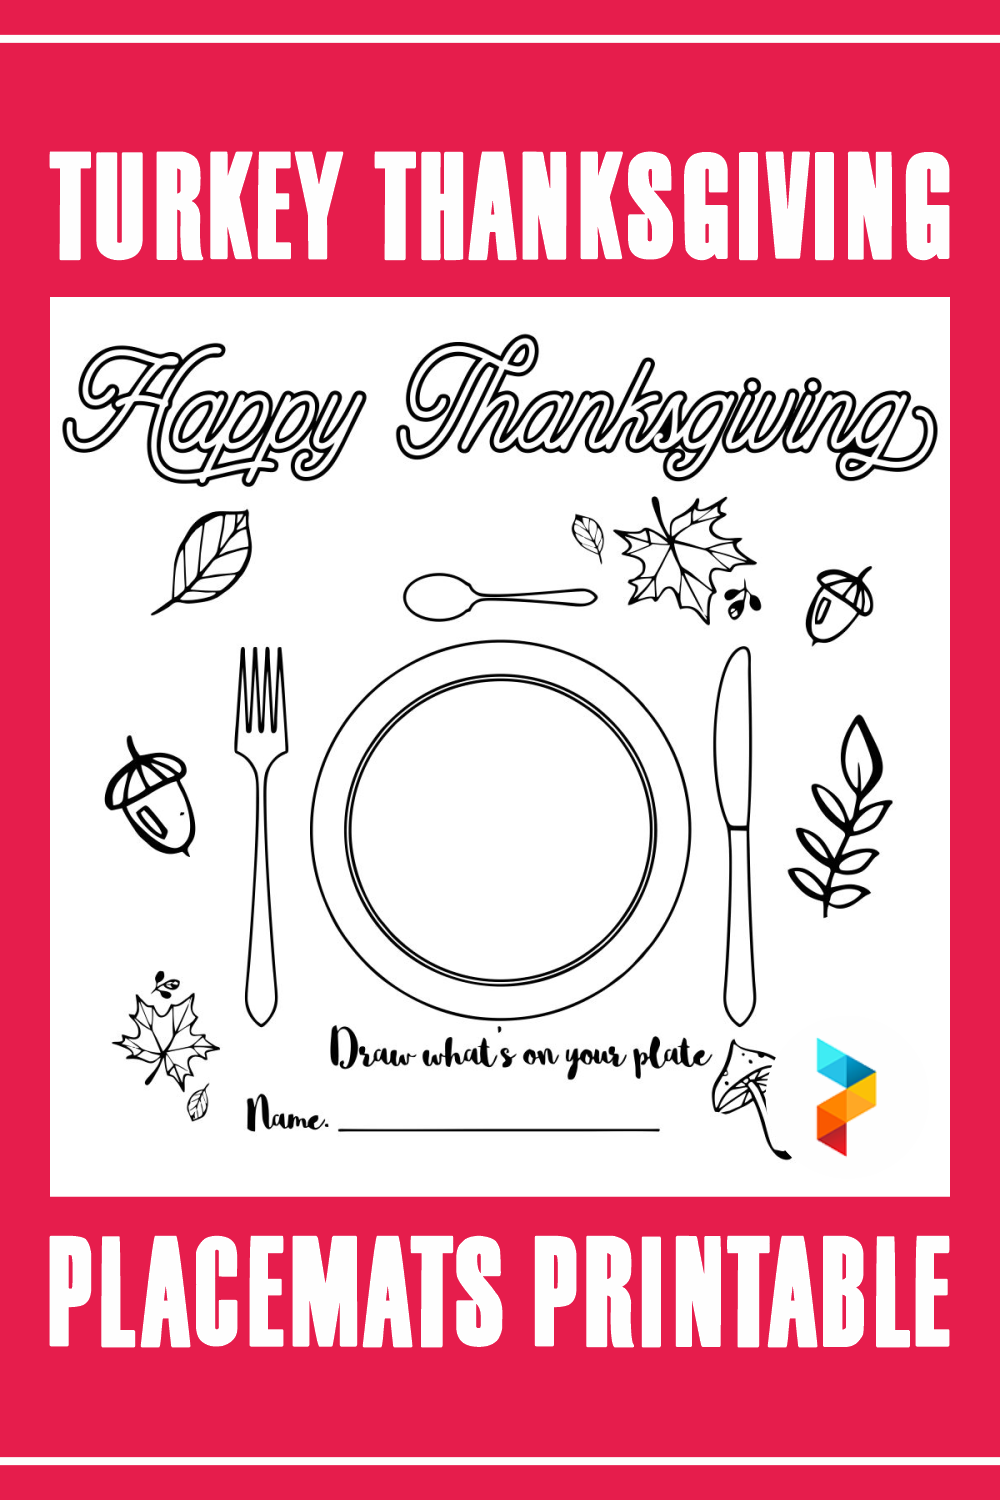 Turkey Thanksgiving Placemats Printable